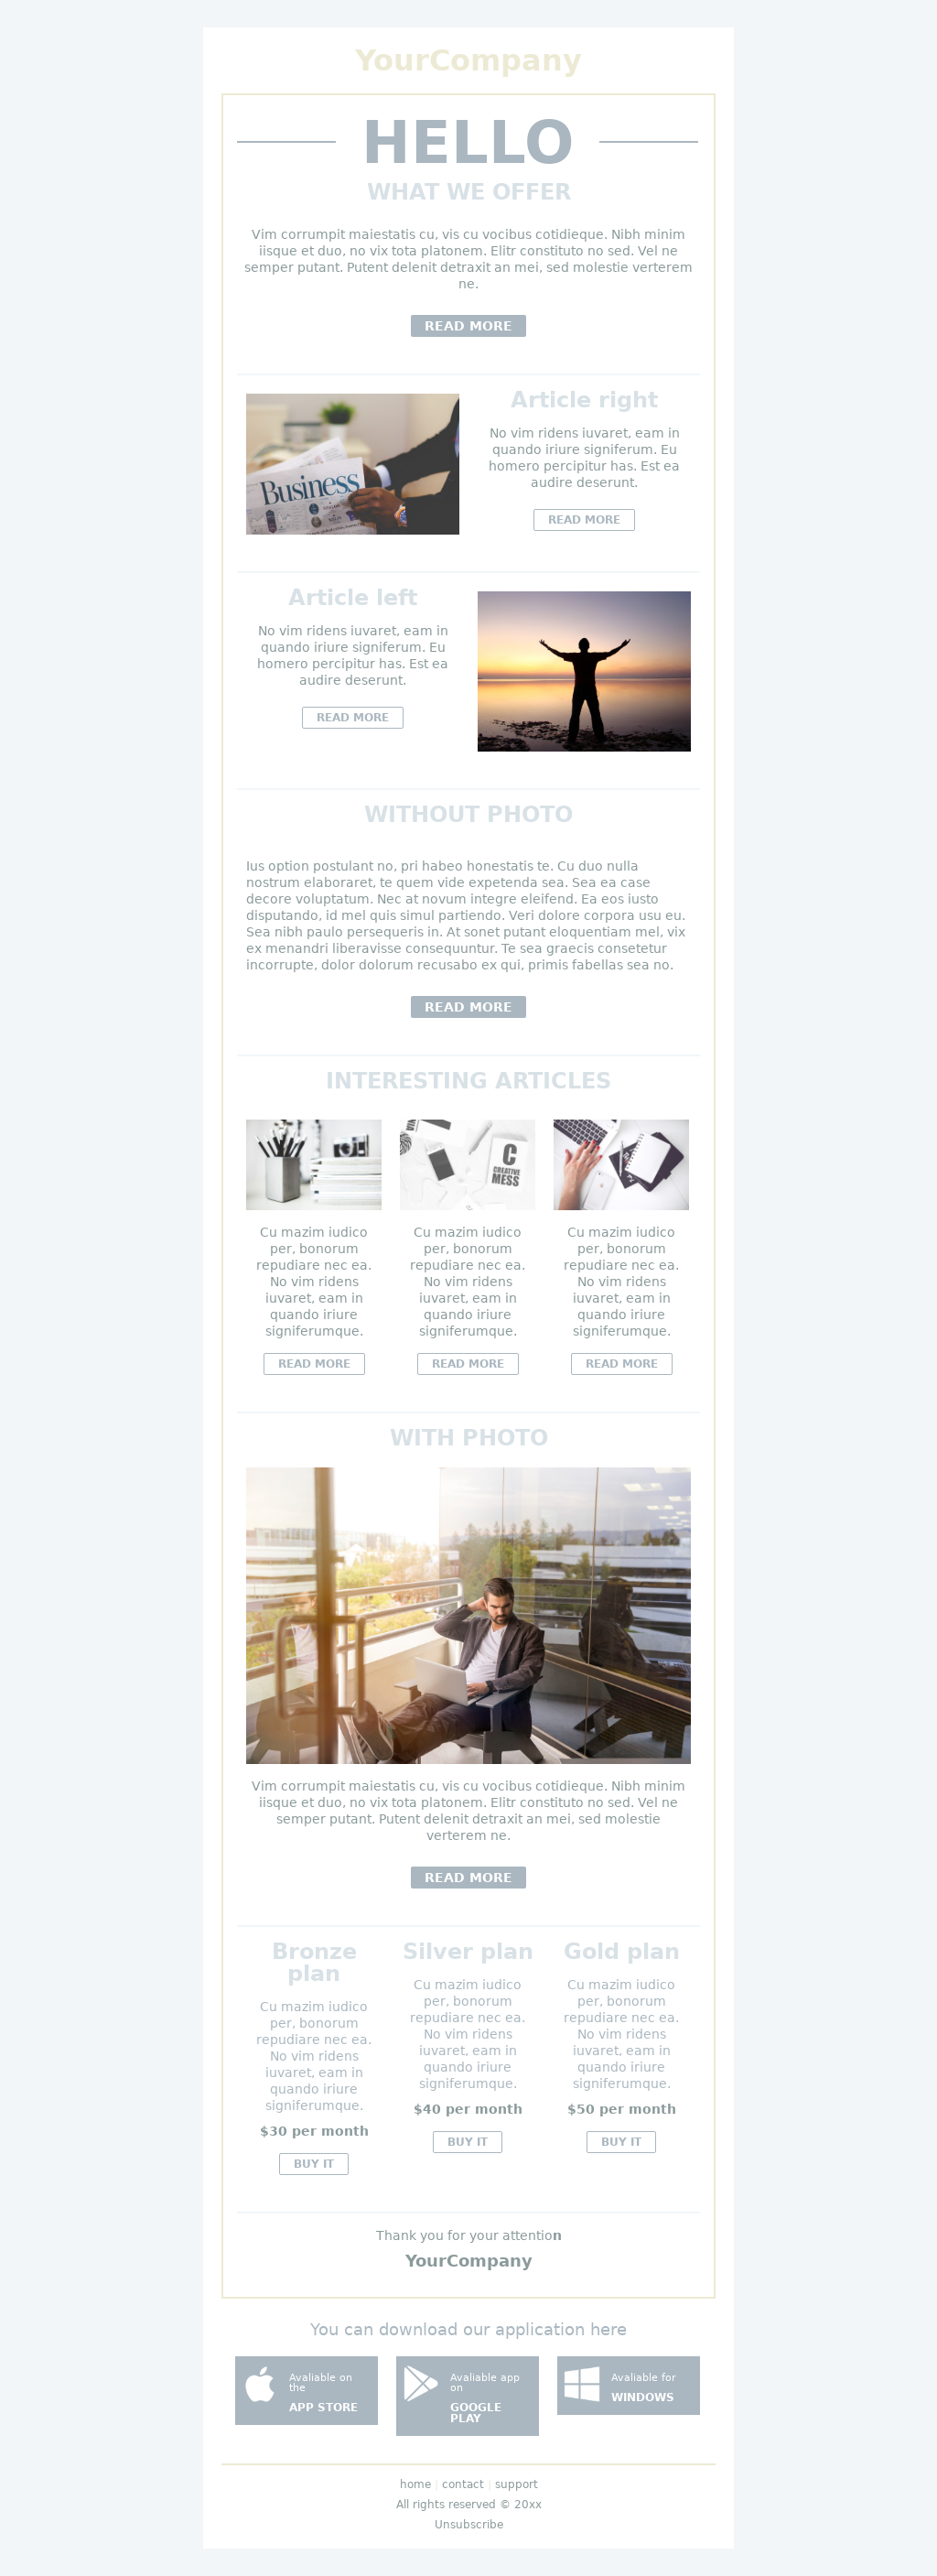 Classic layout and pale colored responsive email template